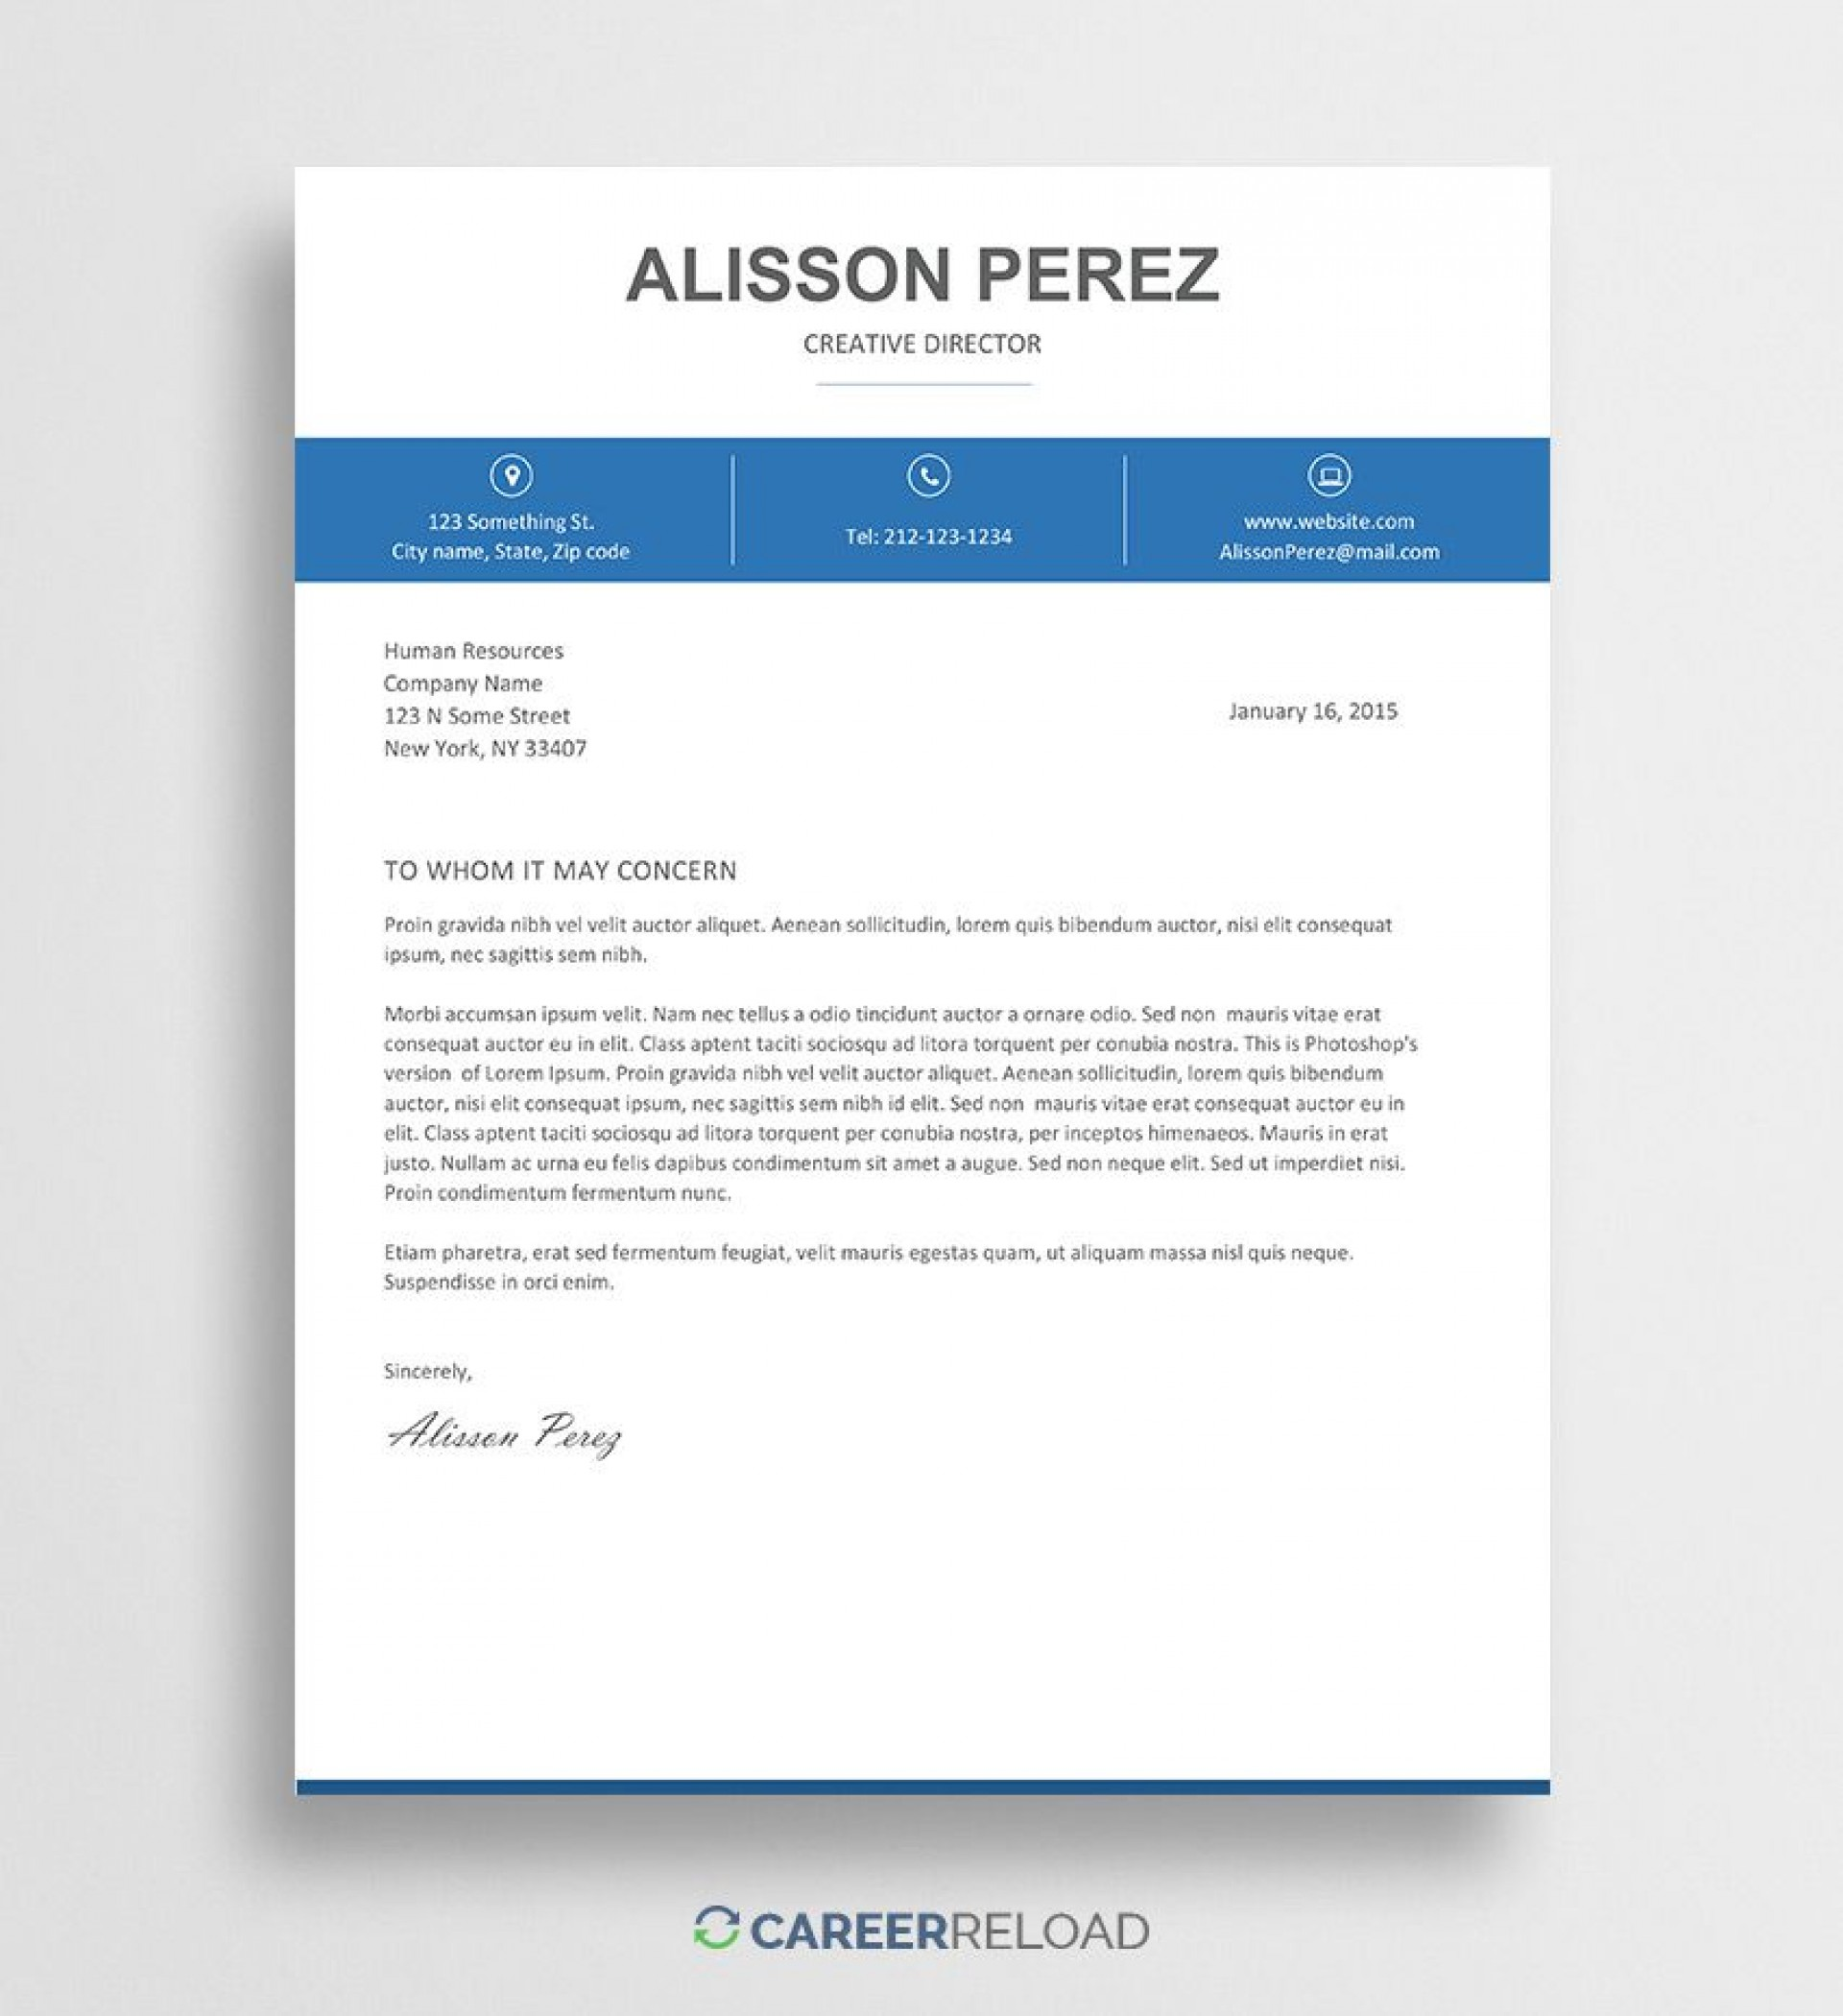 007 Archaicawful Free Download Cover Letter Sample Design  For Fresher Pdf Template1920